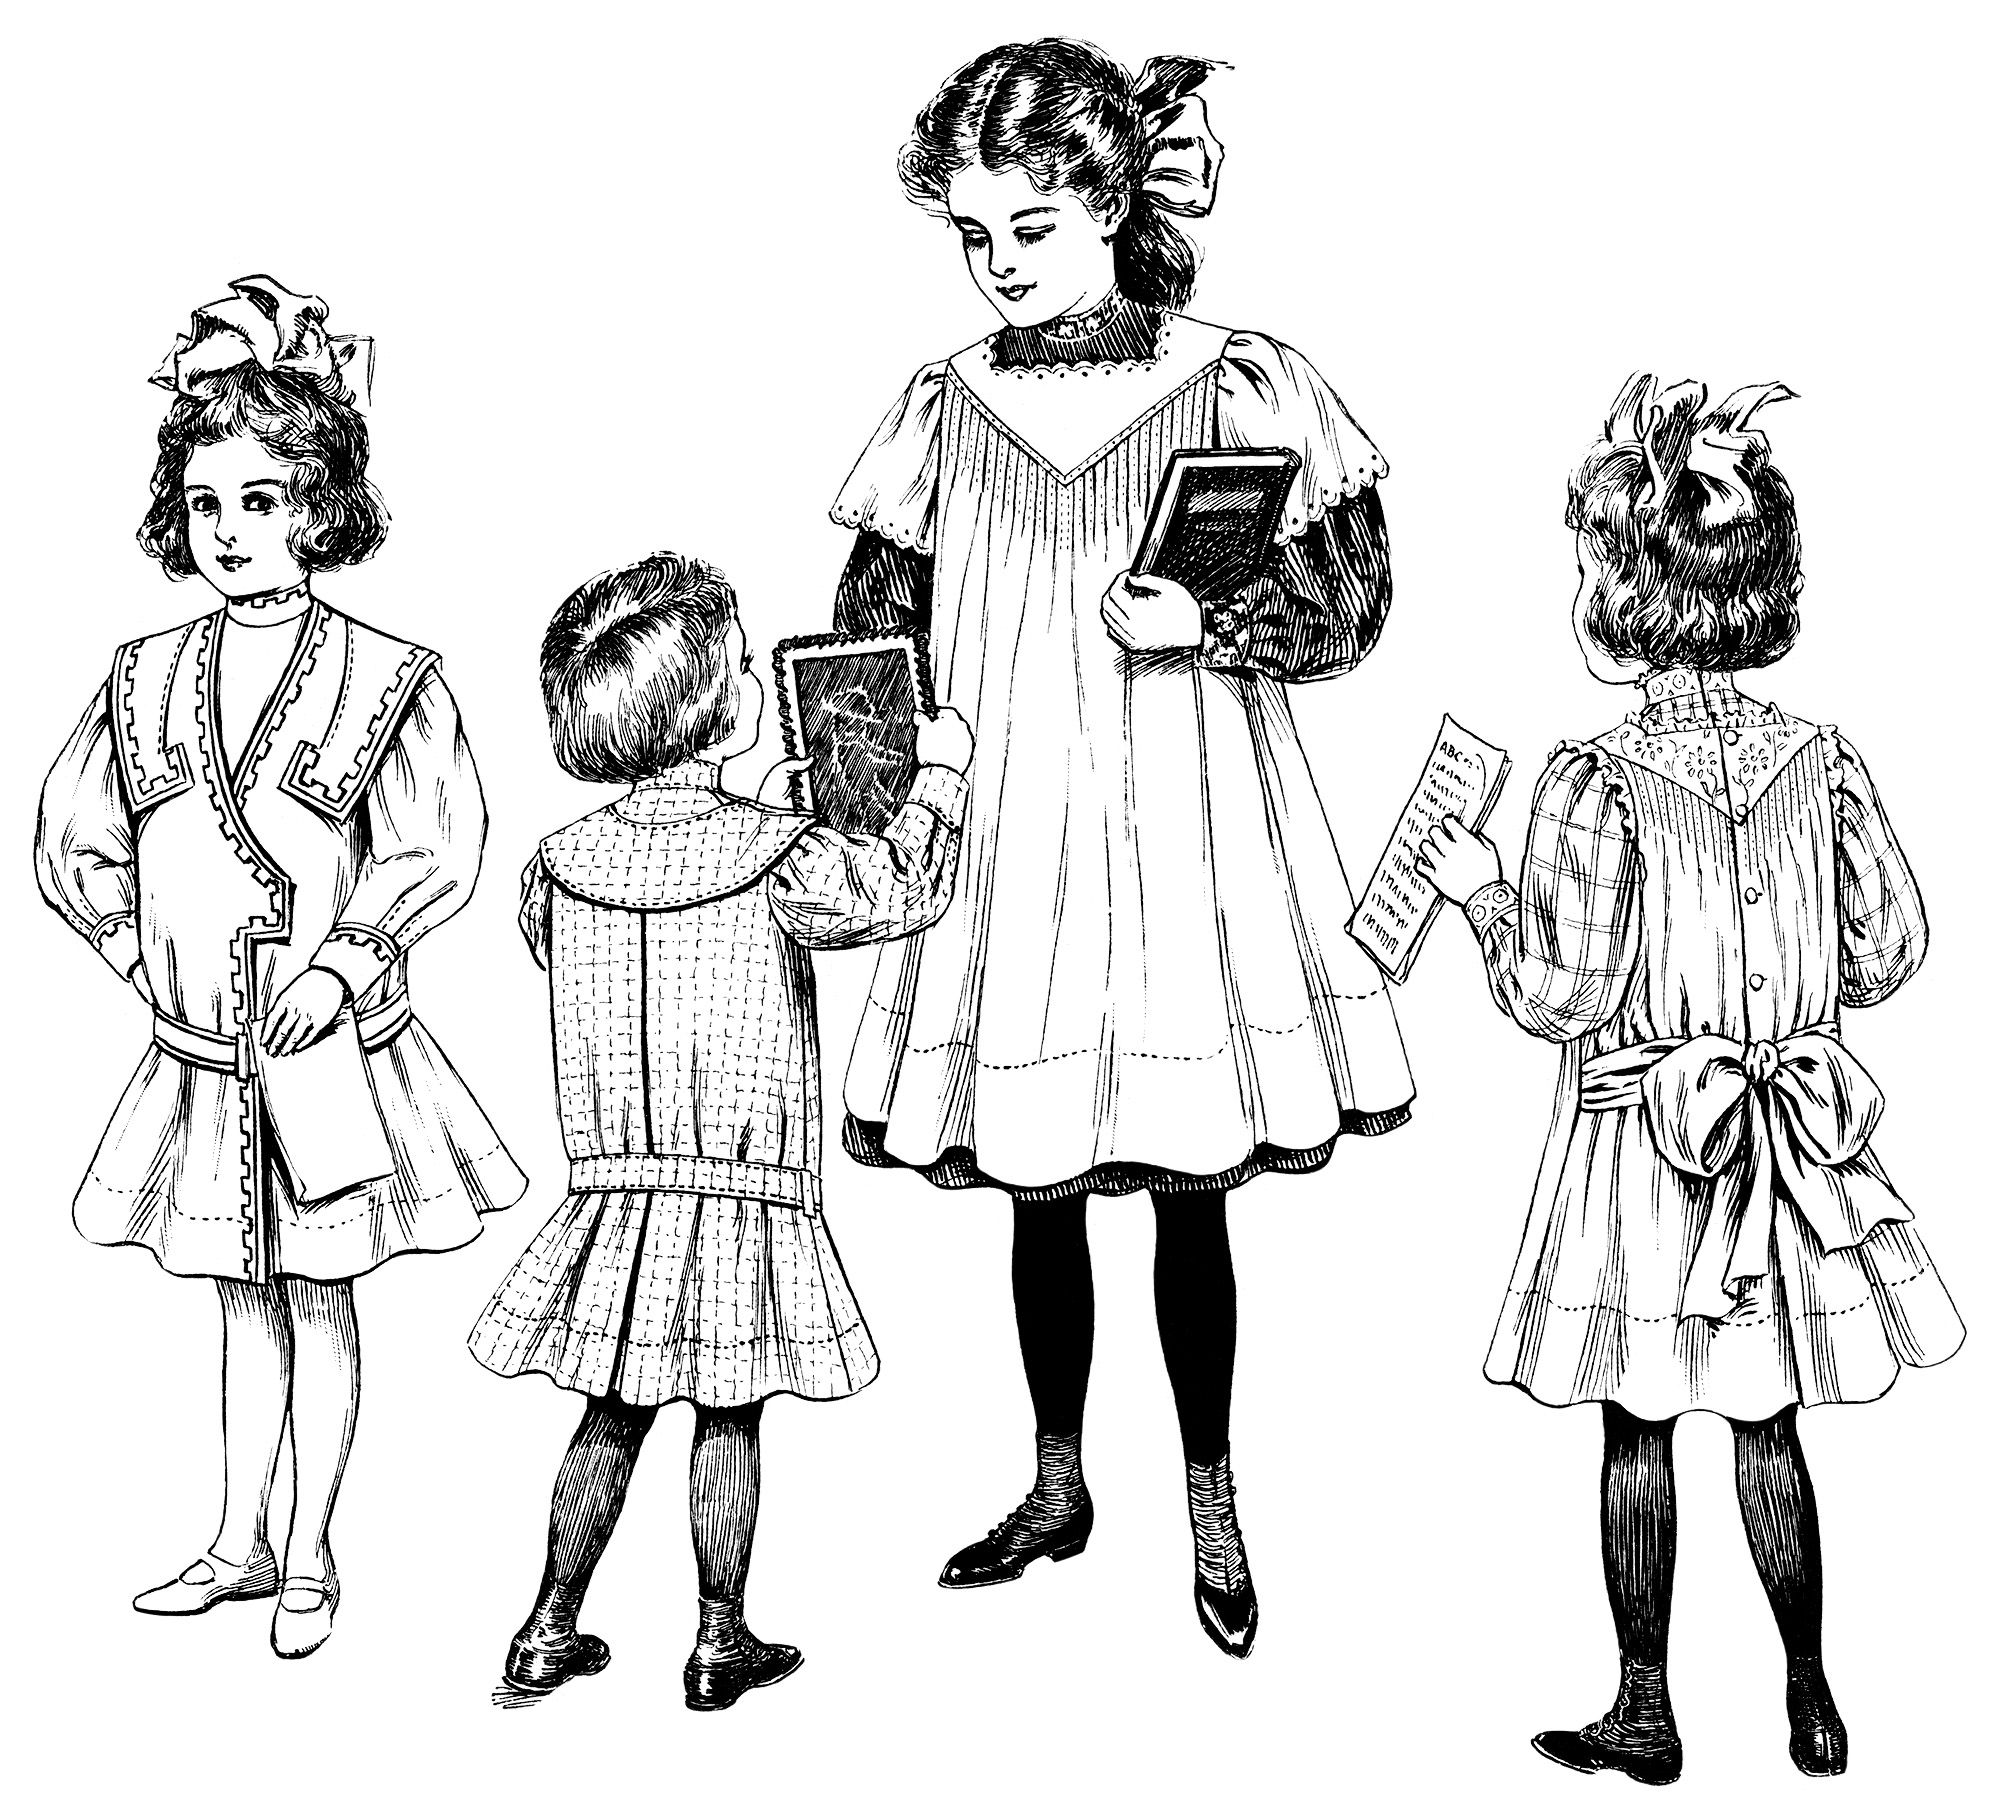 ... clothing styles for children in 1908. The oldest child is holding a book and the younger three are each holding a handmade card or handwritten notes.